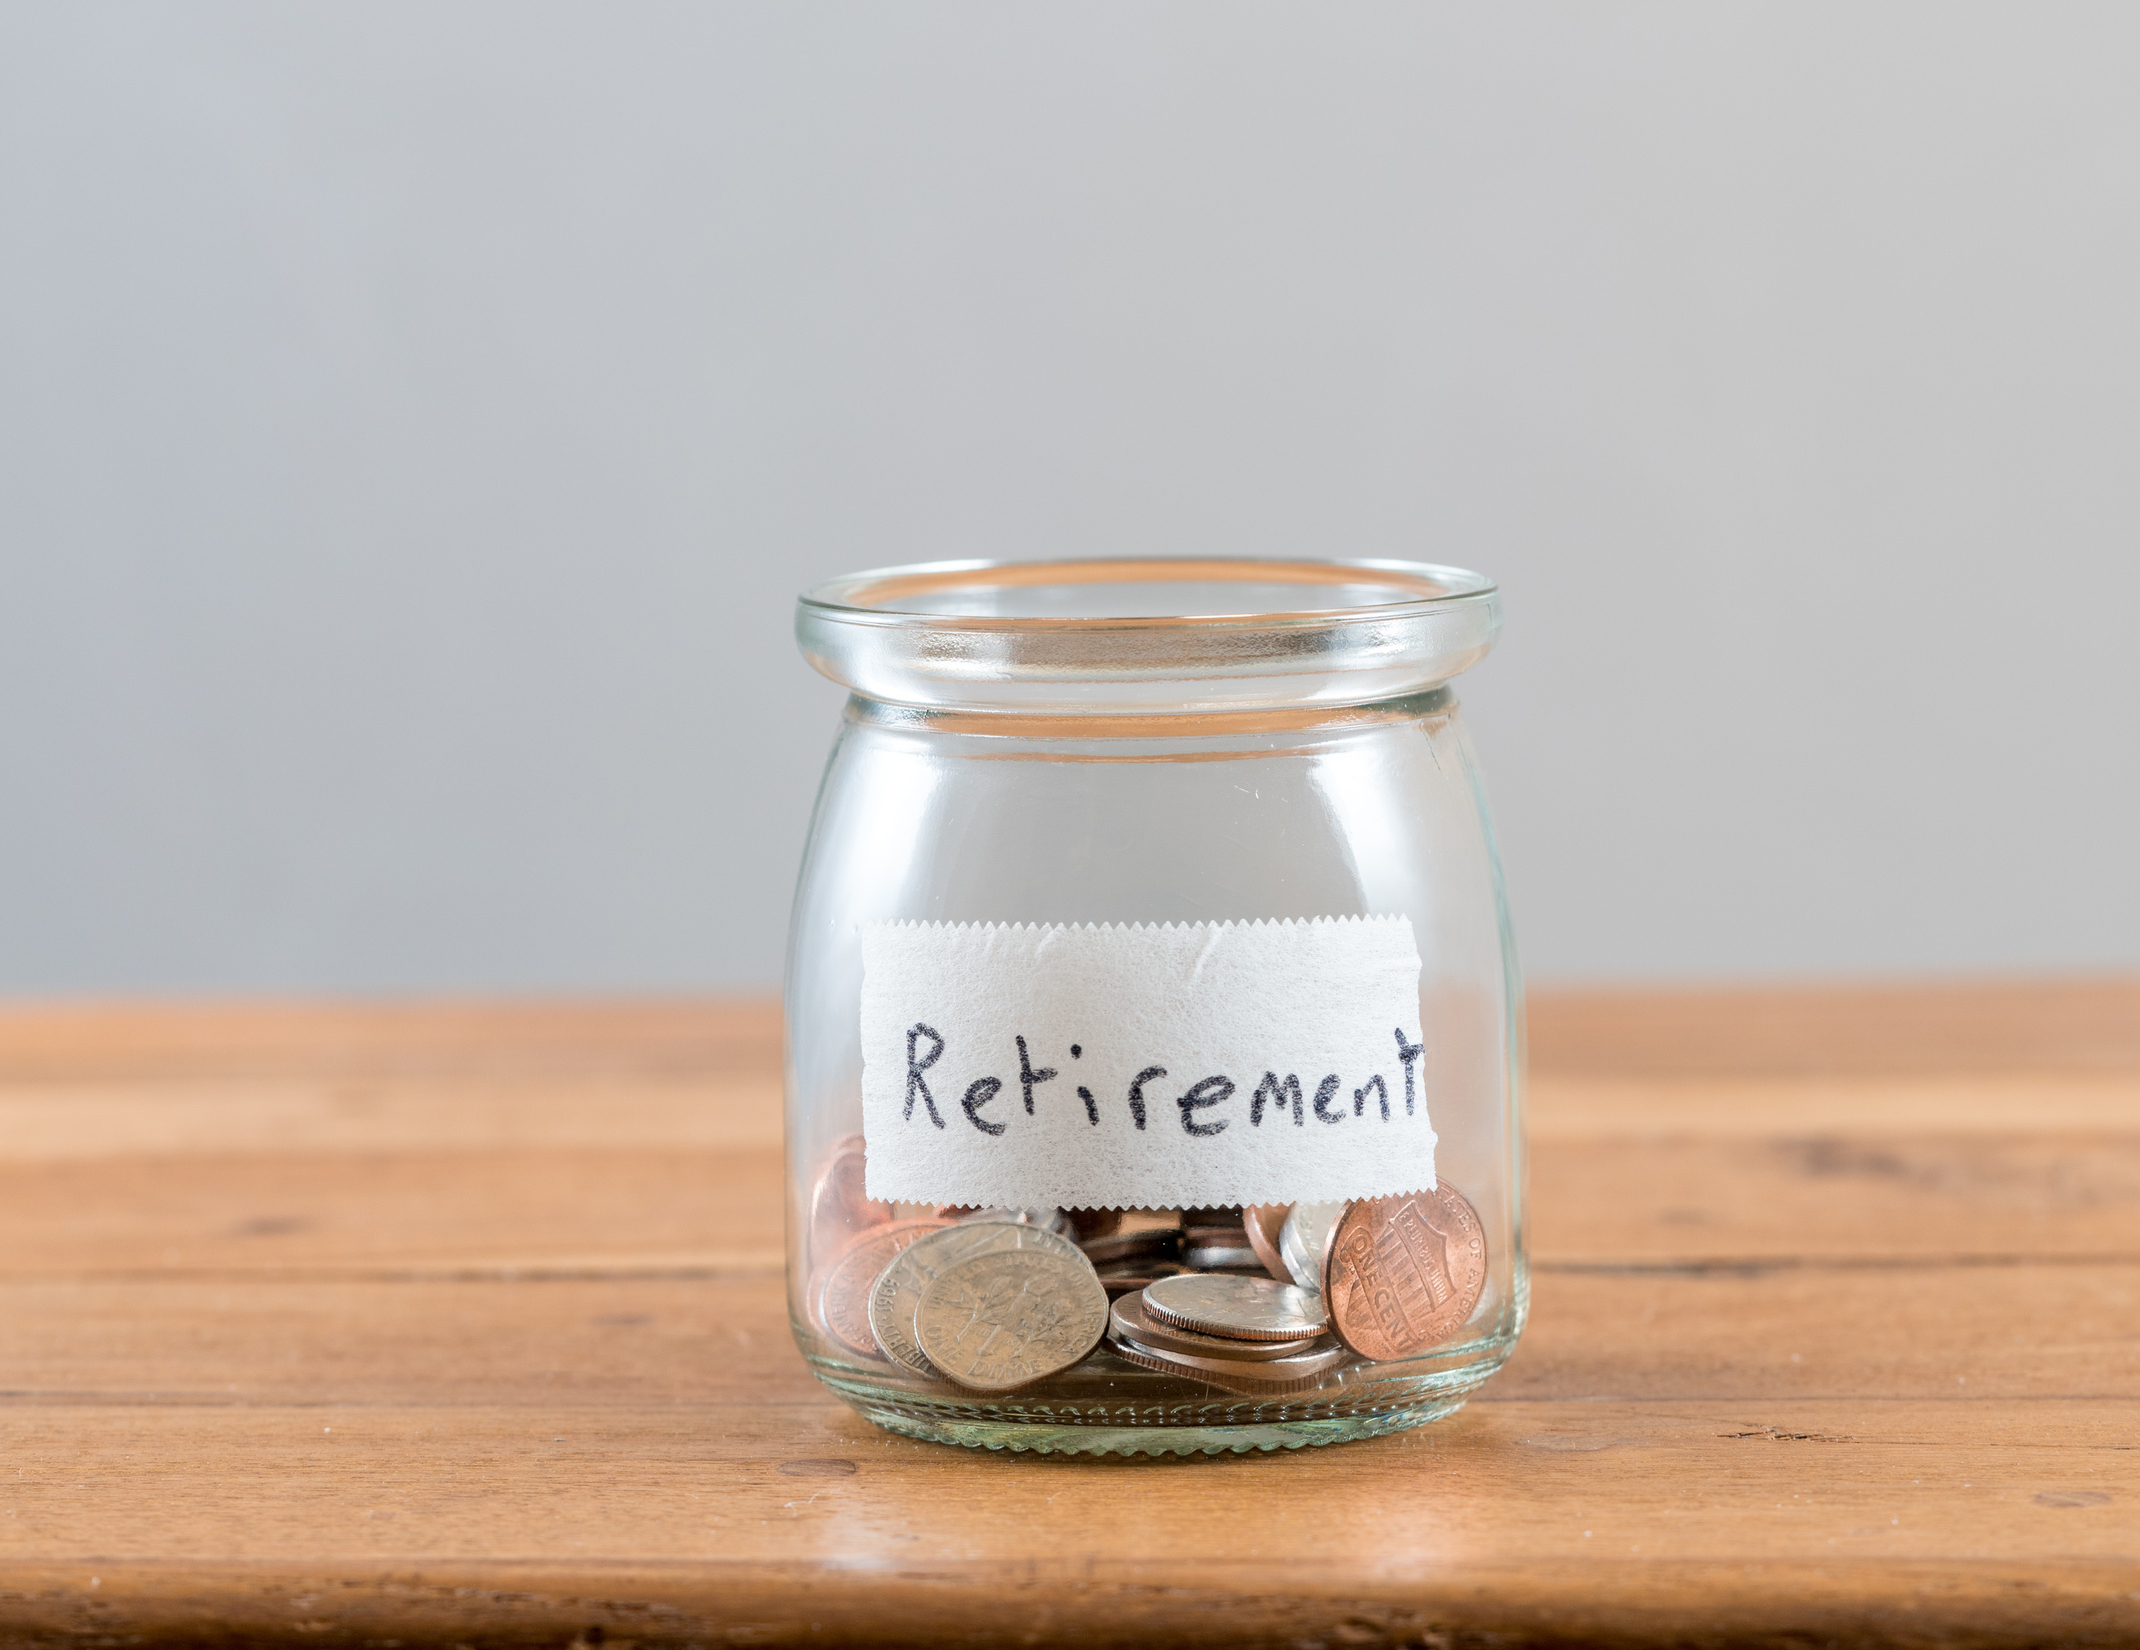 How To Retire On Very Little Money